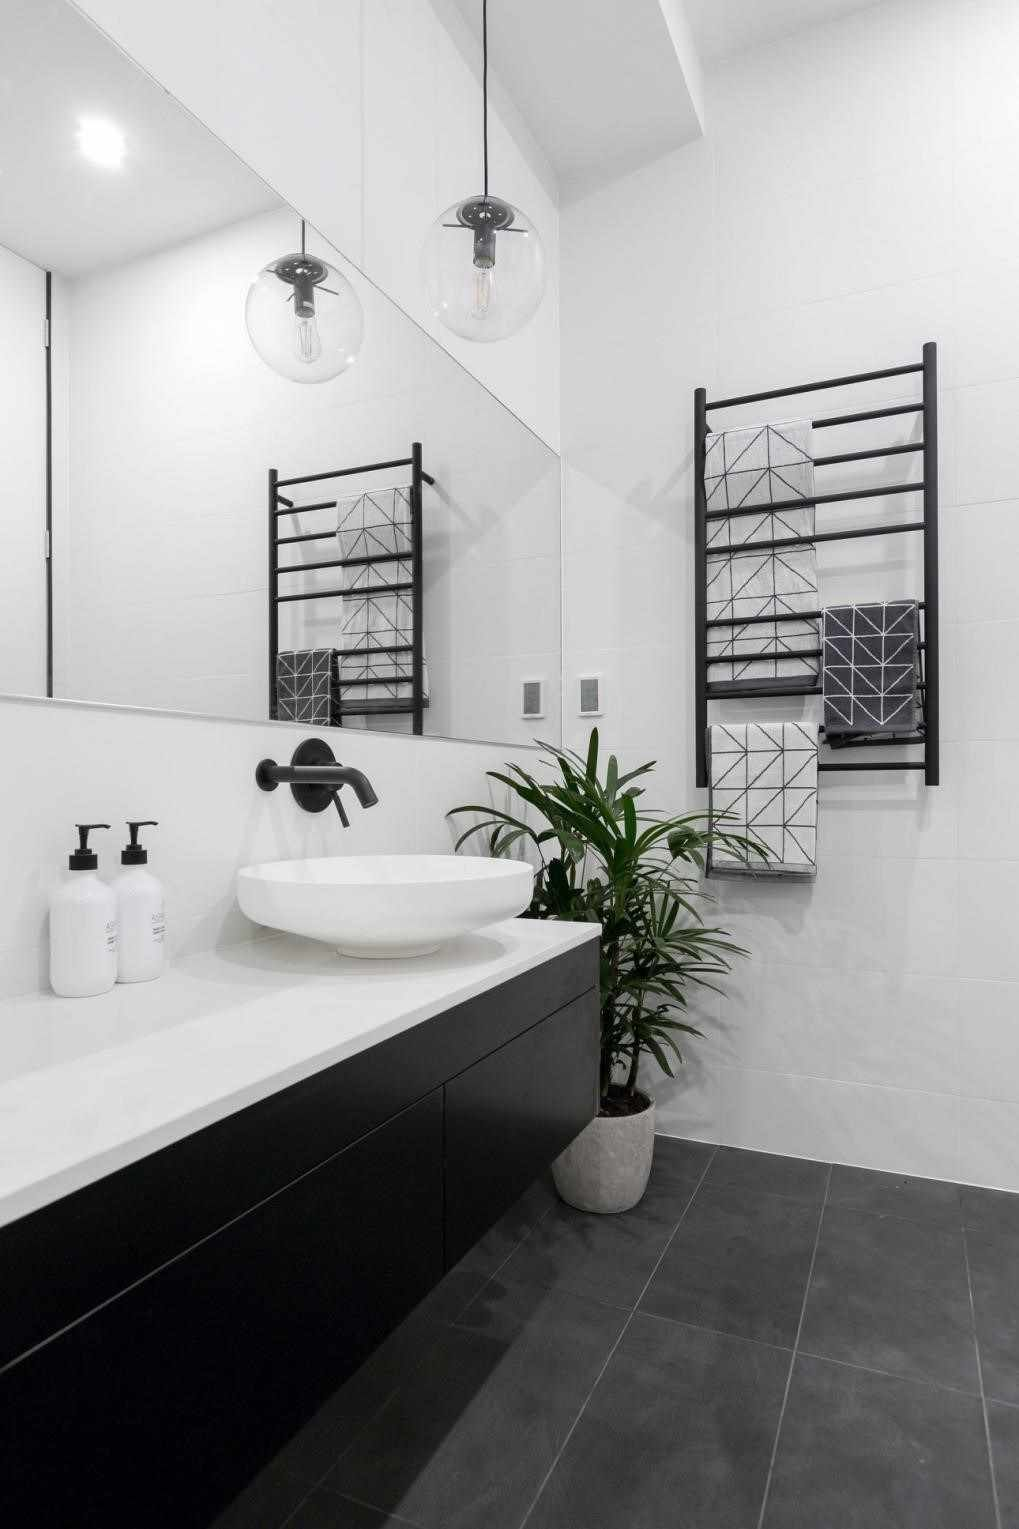 6 White Bathroom Ideas for a Peaceful Vibe - Houseminds #whitebathroompaint